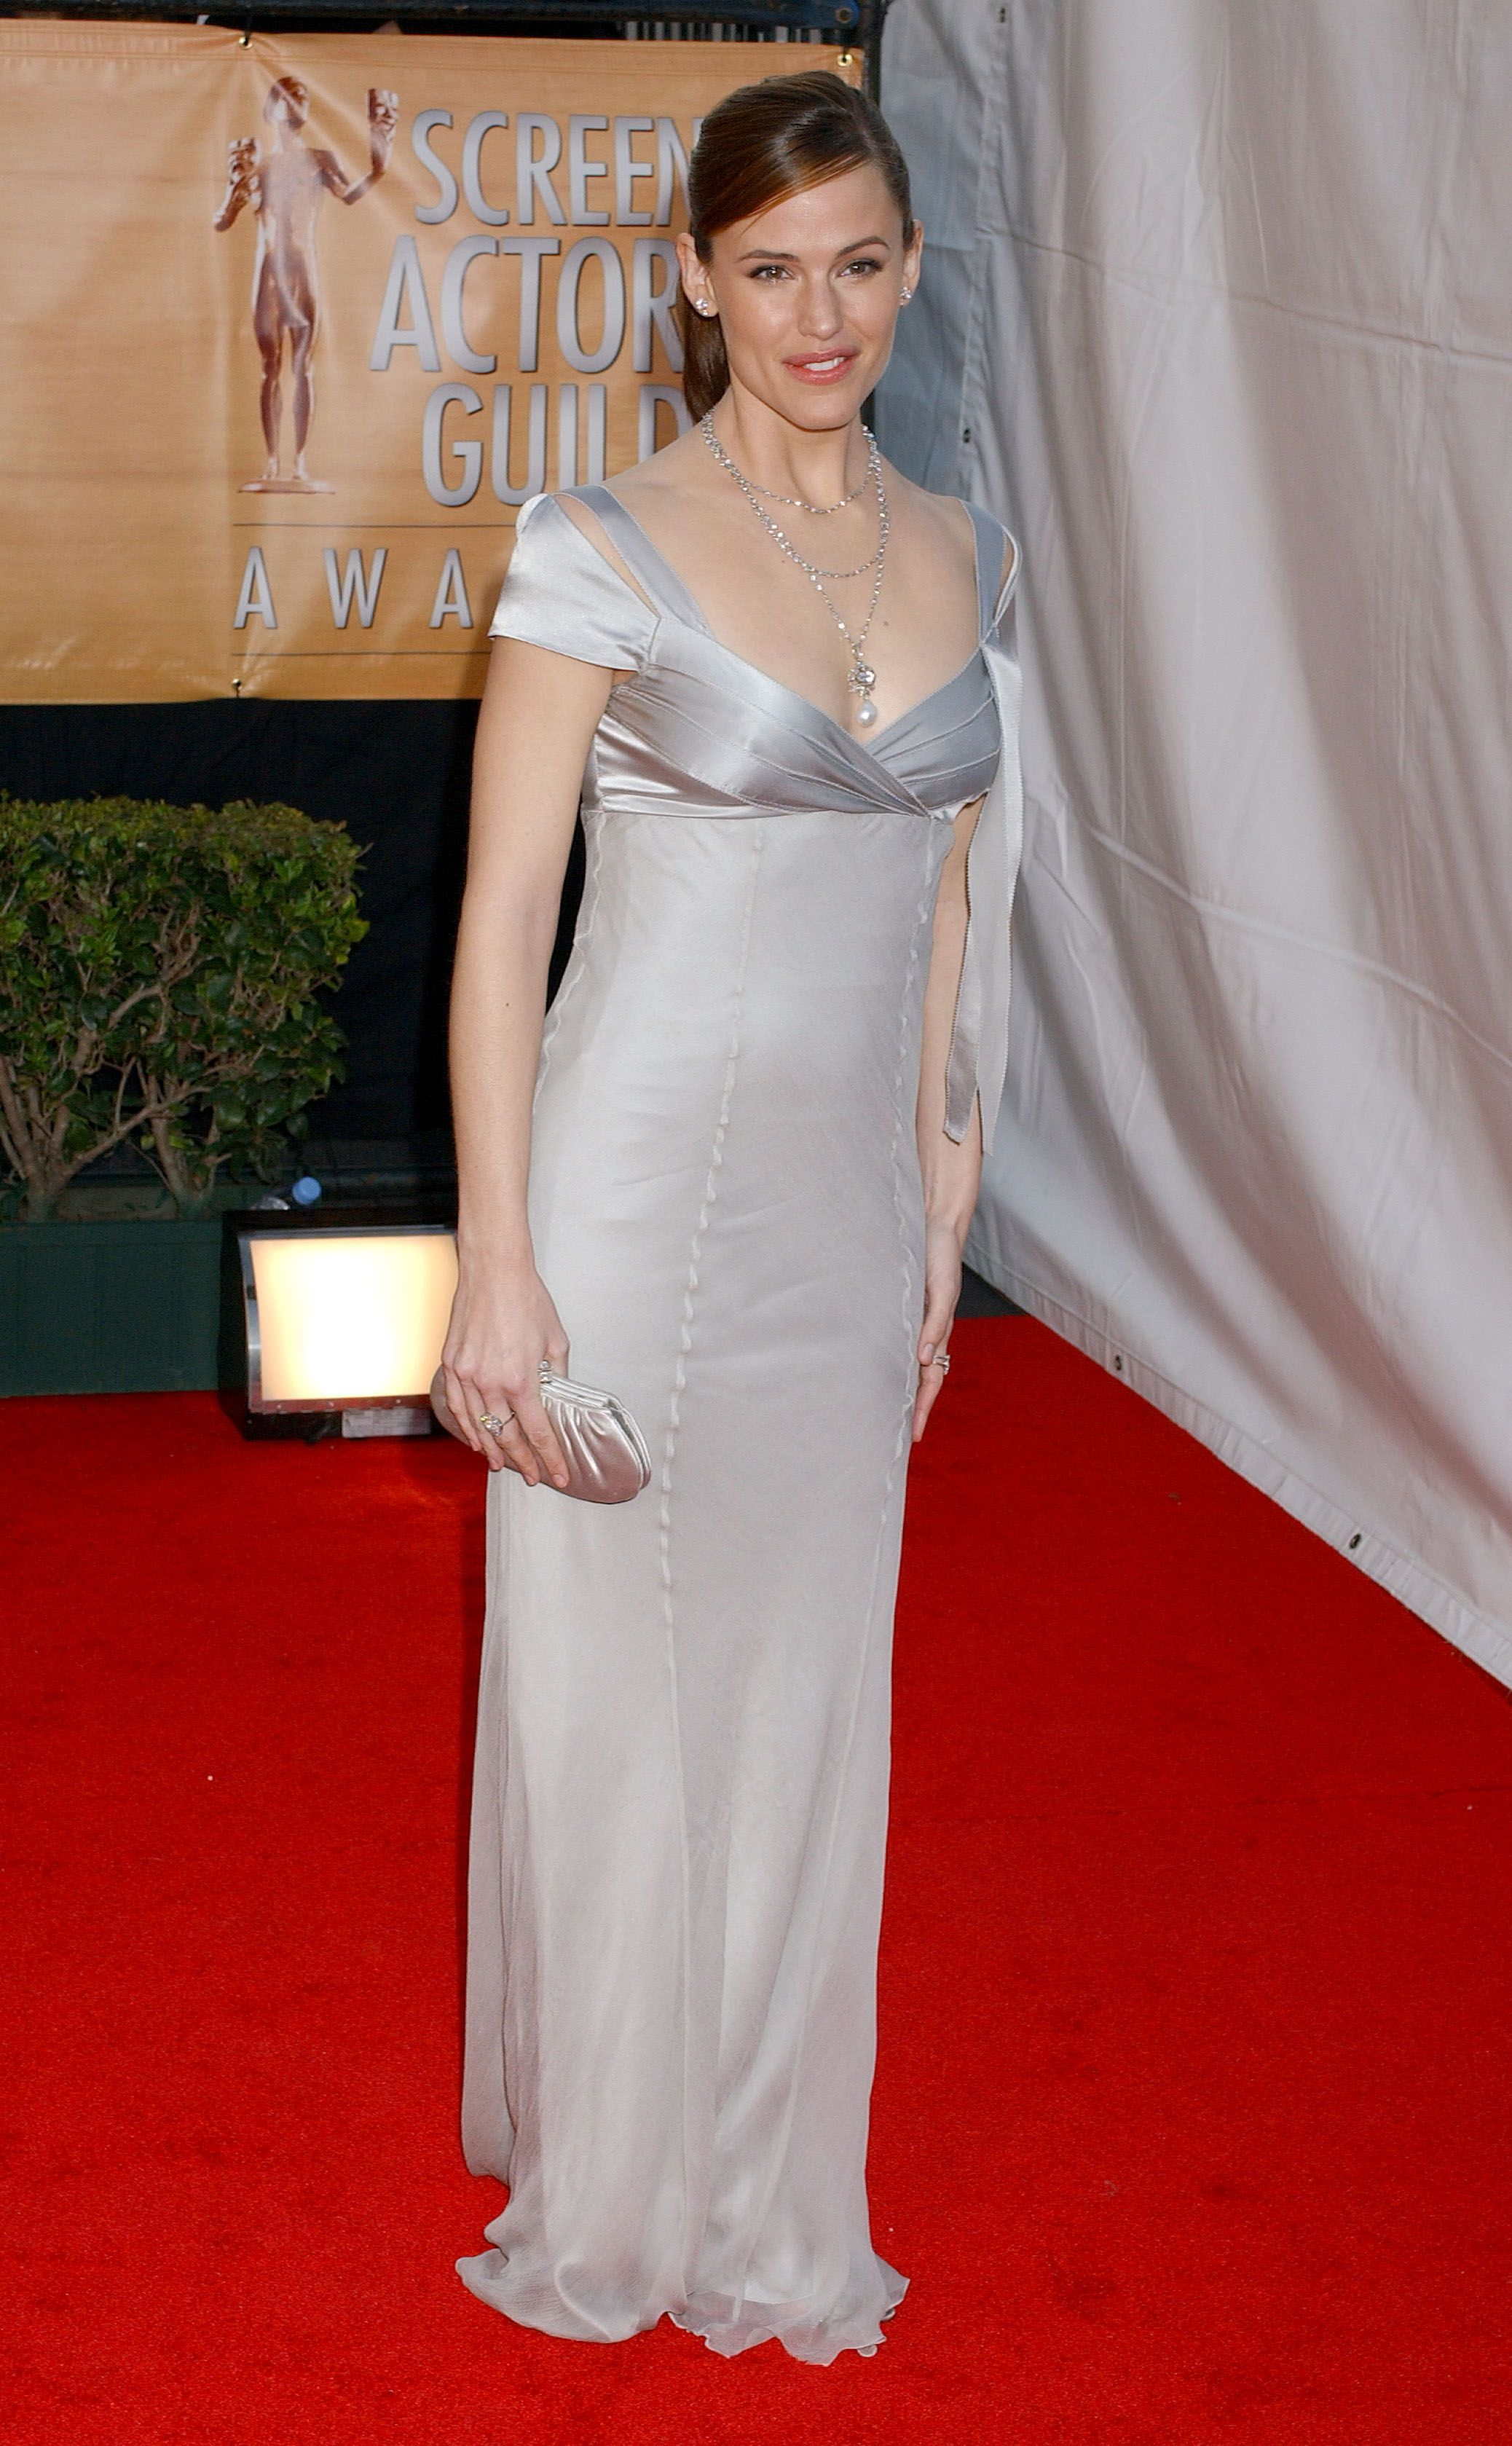 February 5, 2005 Gracing the red carpet in a silver column gown at the 11th annual Screen Actors Guild Awards in Los Angeles.